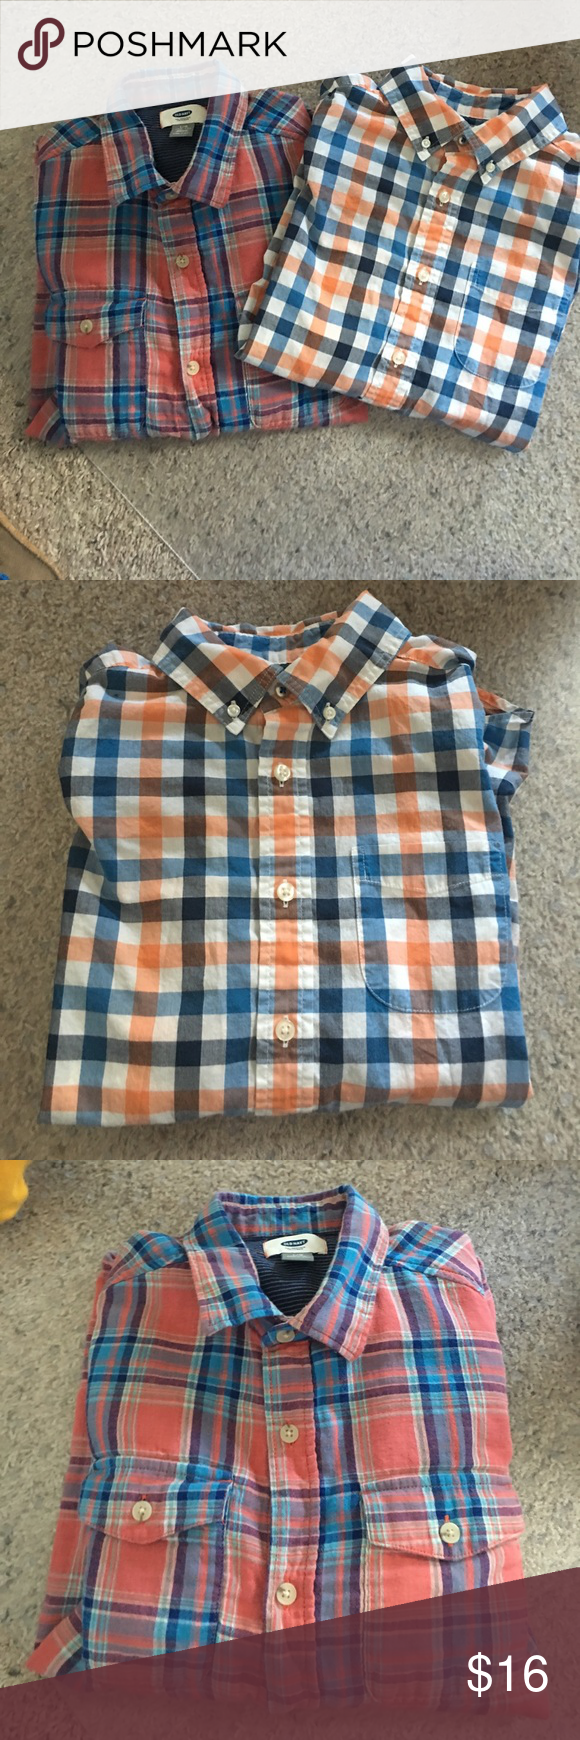 Boys spring plaid shirt bundle Two very nice. MUNT condition boys plaid dress shirts.  Easy to dress up or down.  Wear with dress pants & nice tie or bow tie.  Dress down, roll up sleeves with jeans & converse!  Both like new!  Both size 10/12.  The red/blue w/ two pockets up front a bit more casual, light weight soft material...from Old Navy.  The other cotton, very versatile & good looking from Land's End.  No stains, perfect colors for Spring, Summer & wear into fall. Land's End Shirts…